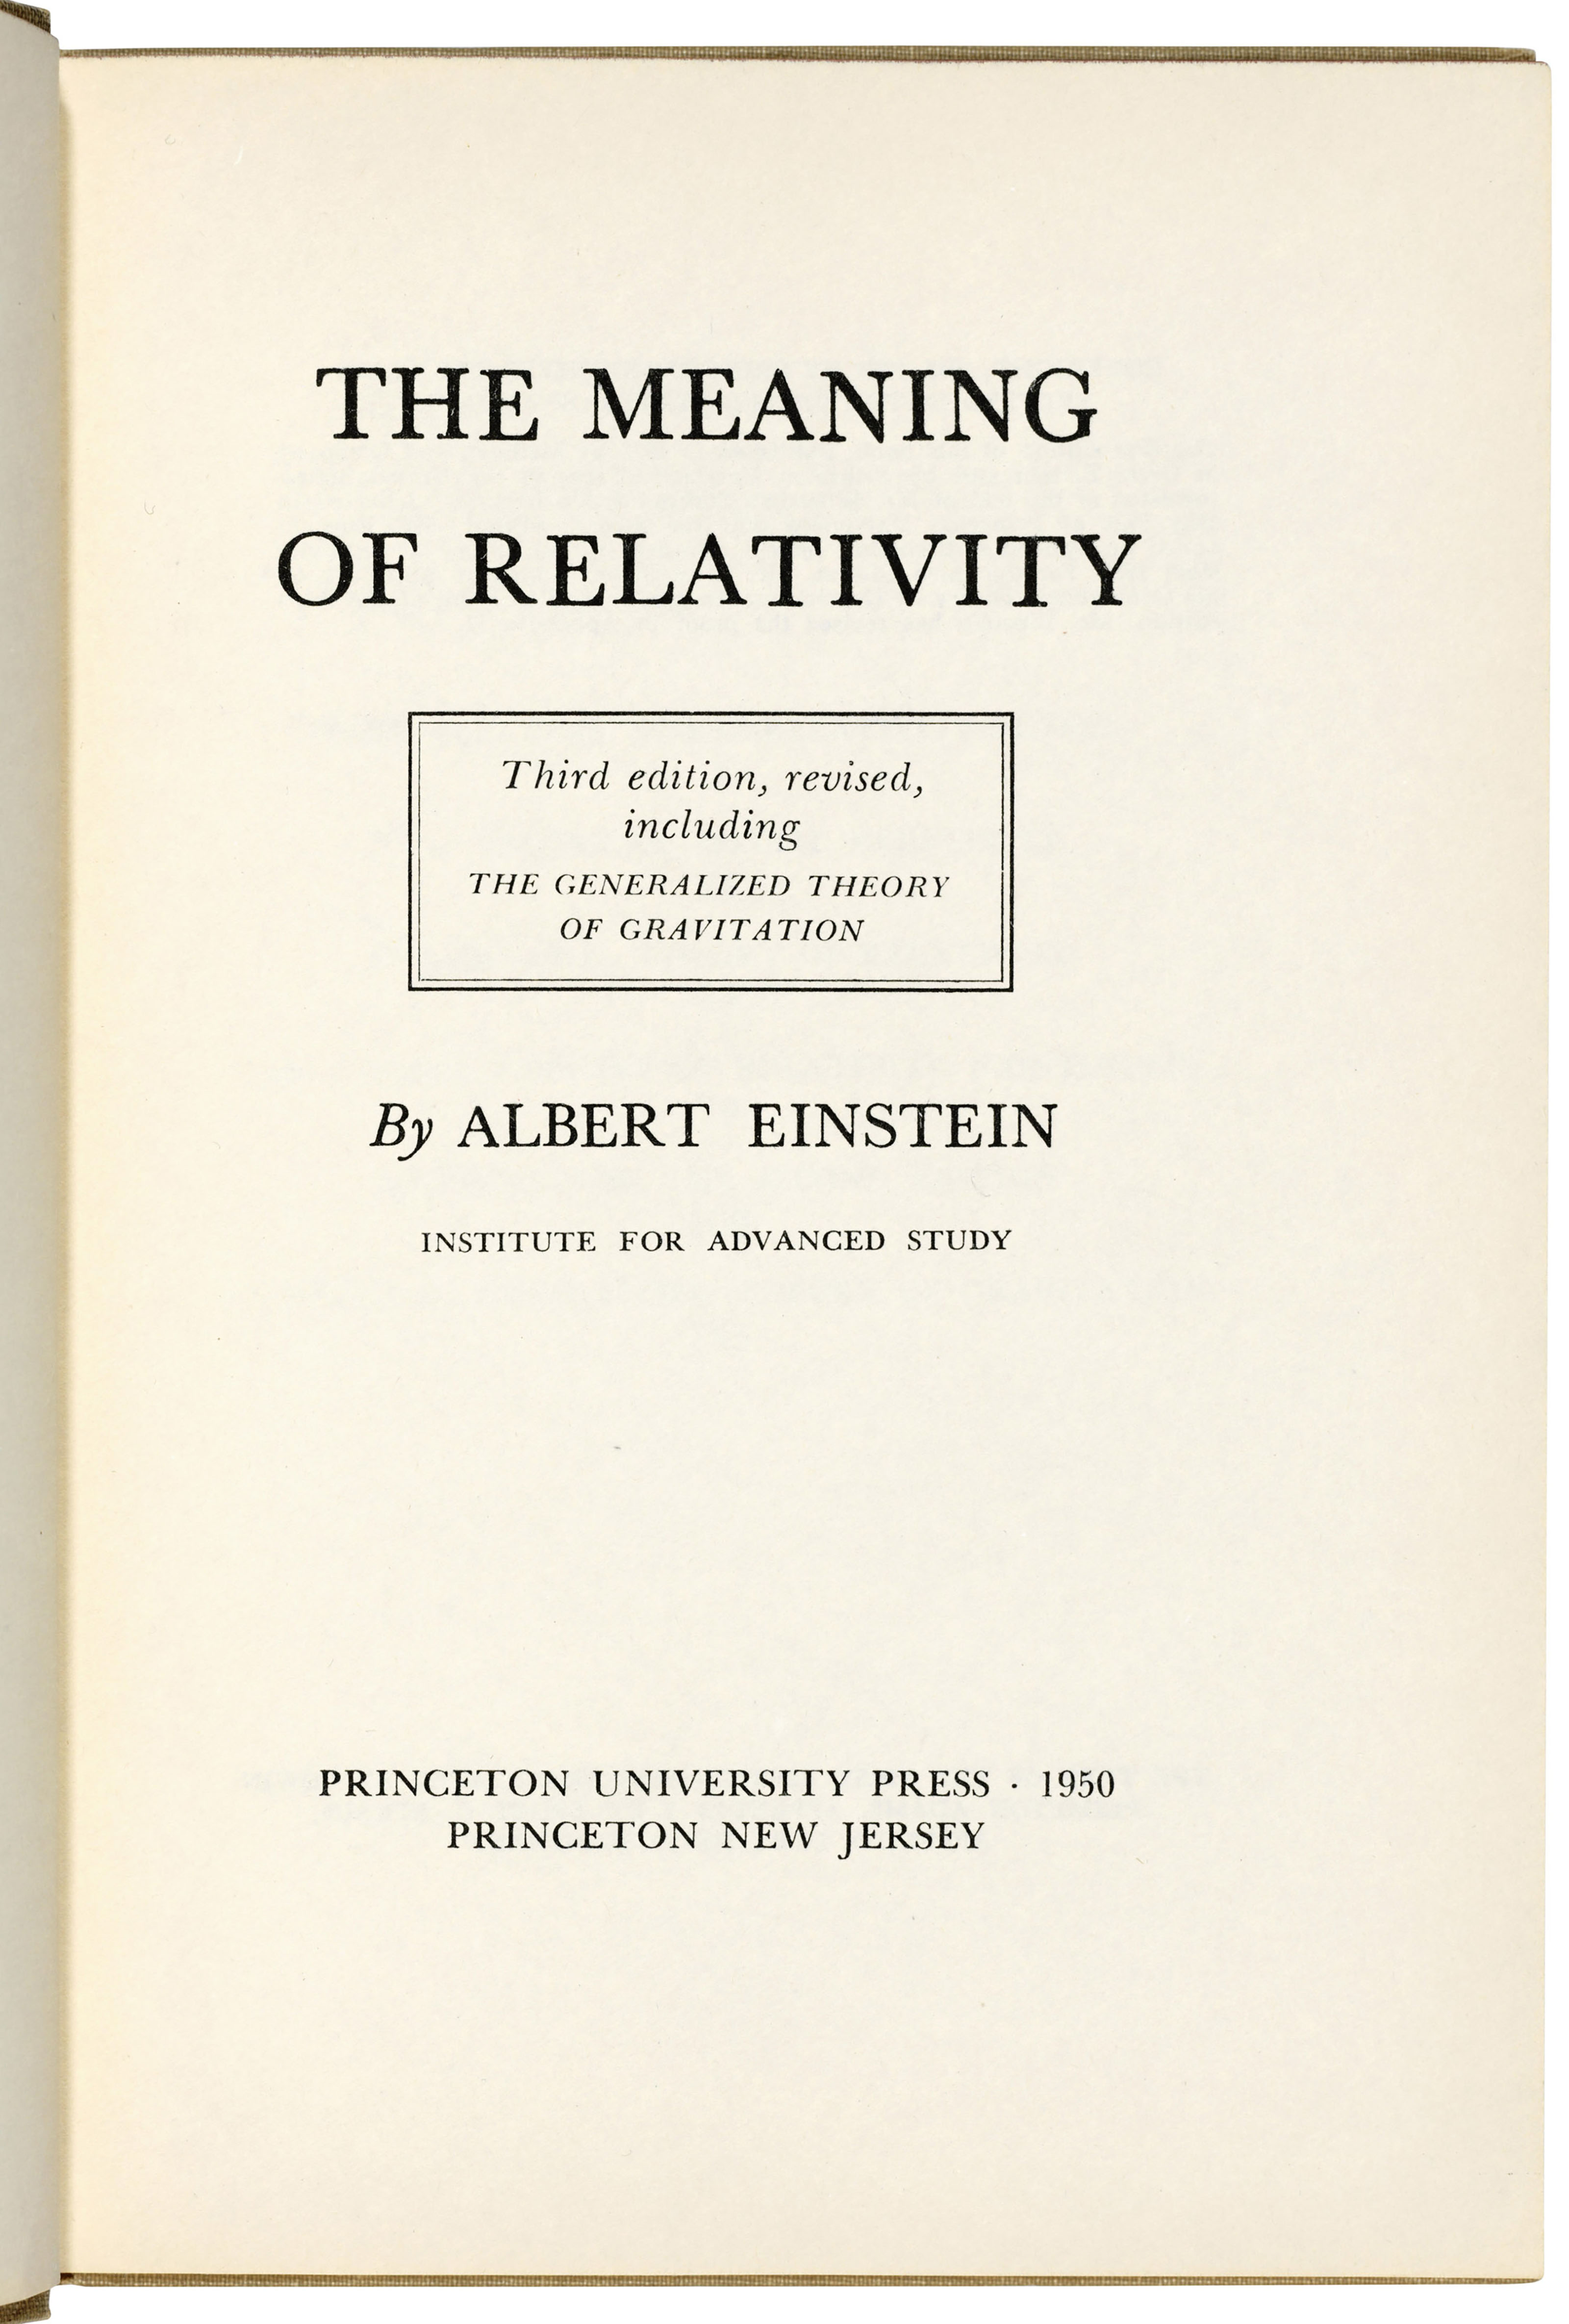 The Meaning of Relativity: authorial presentation copy